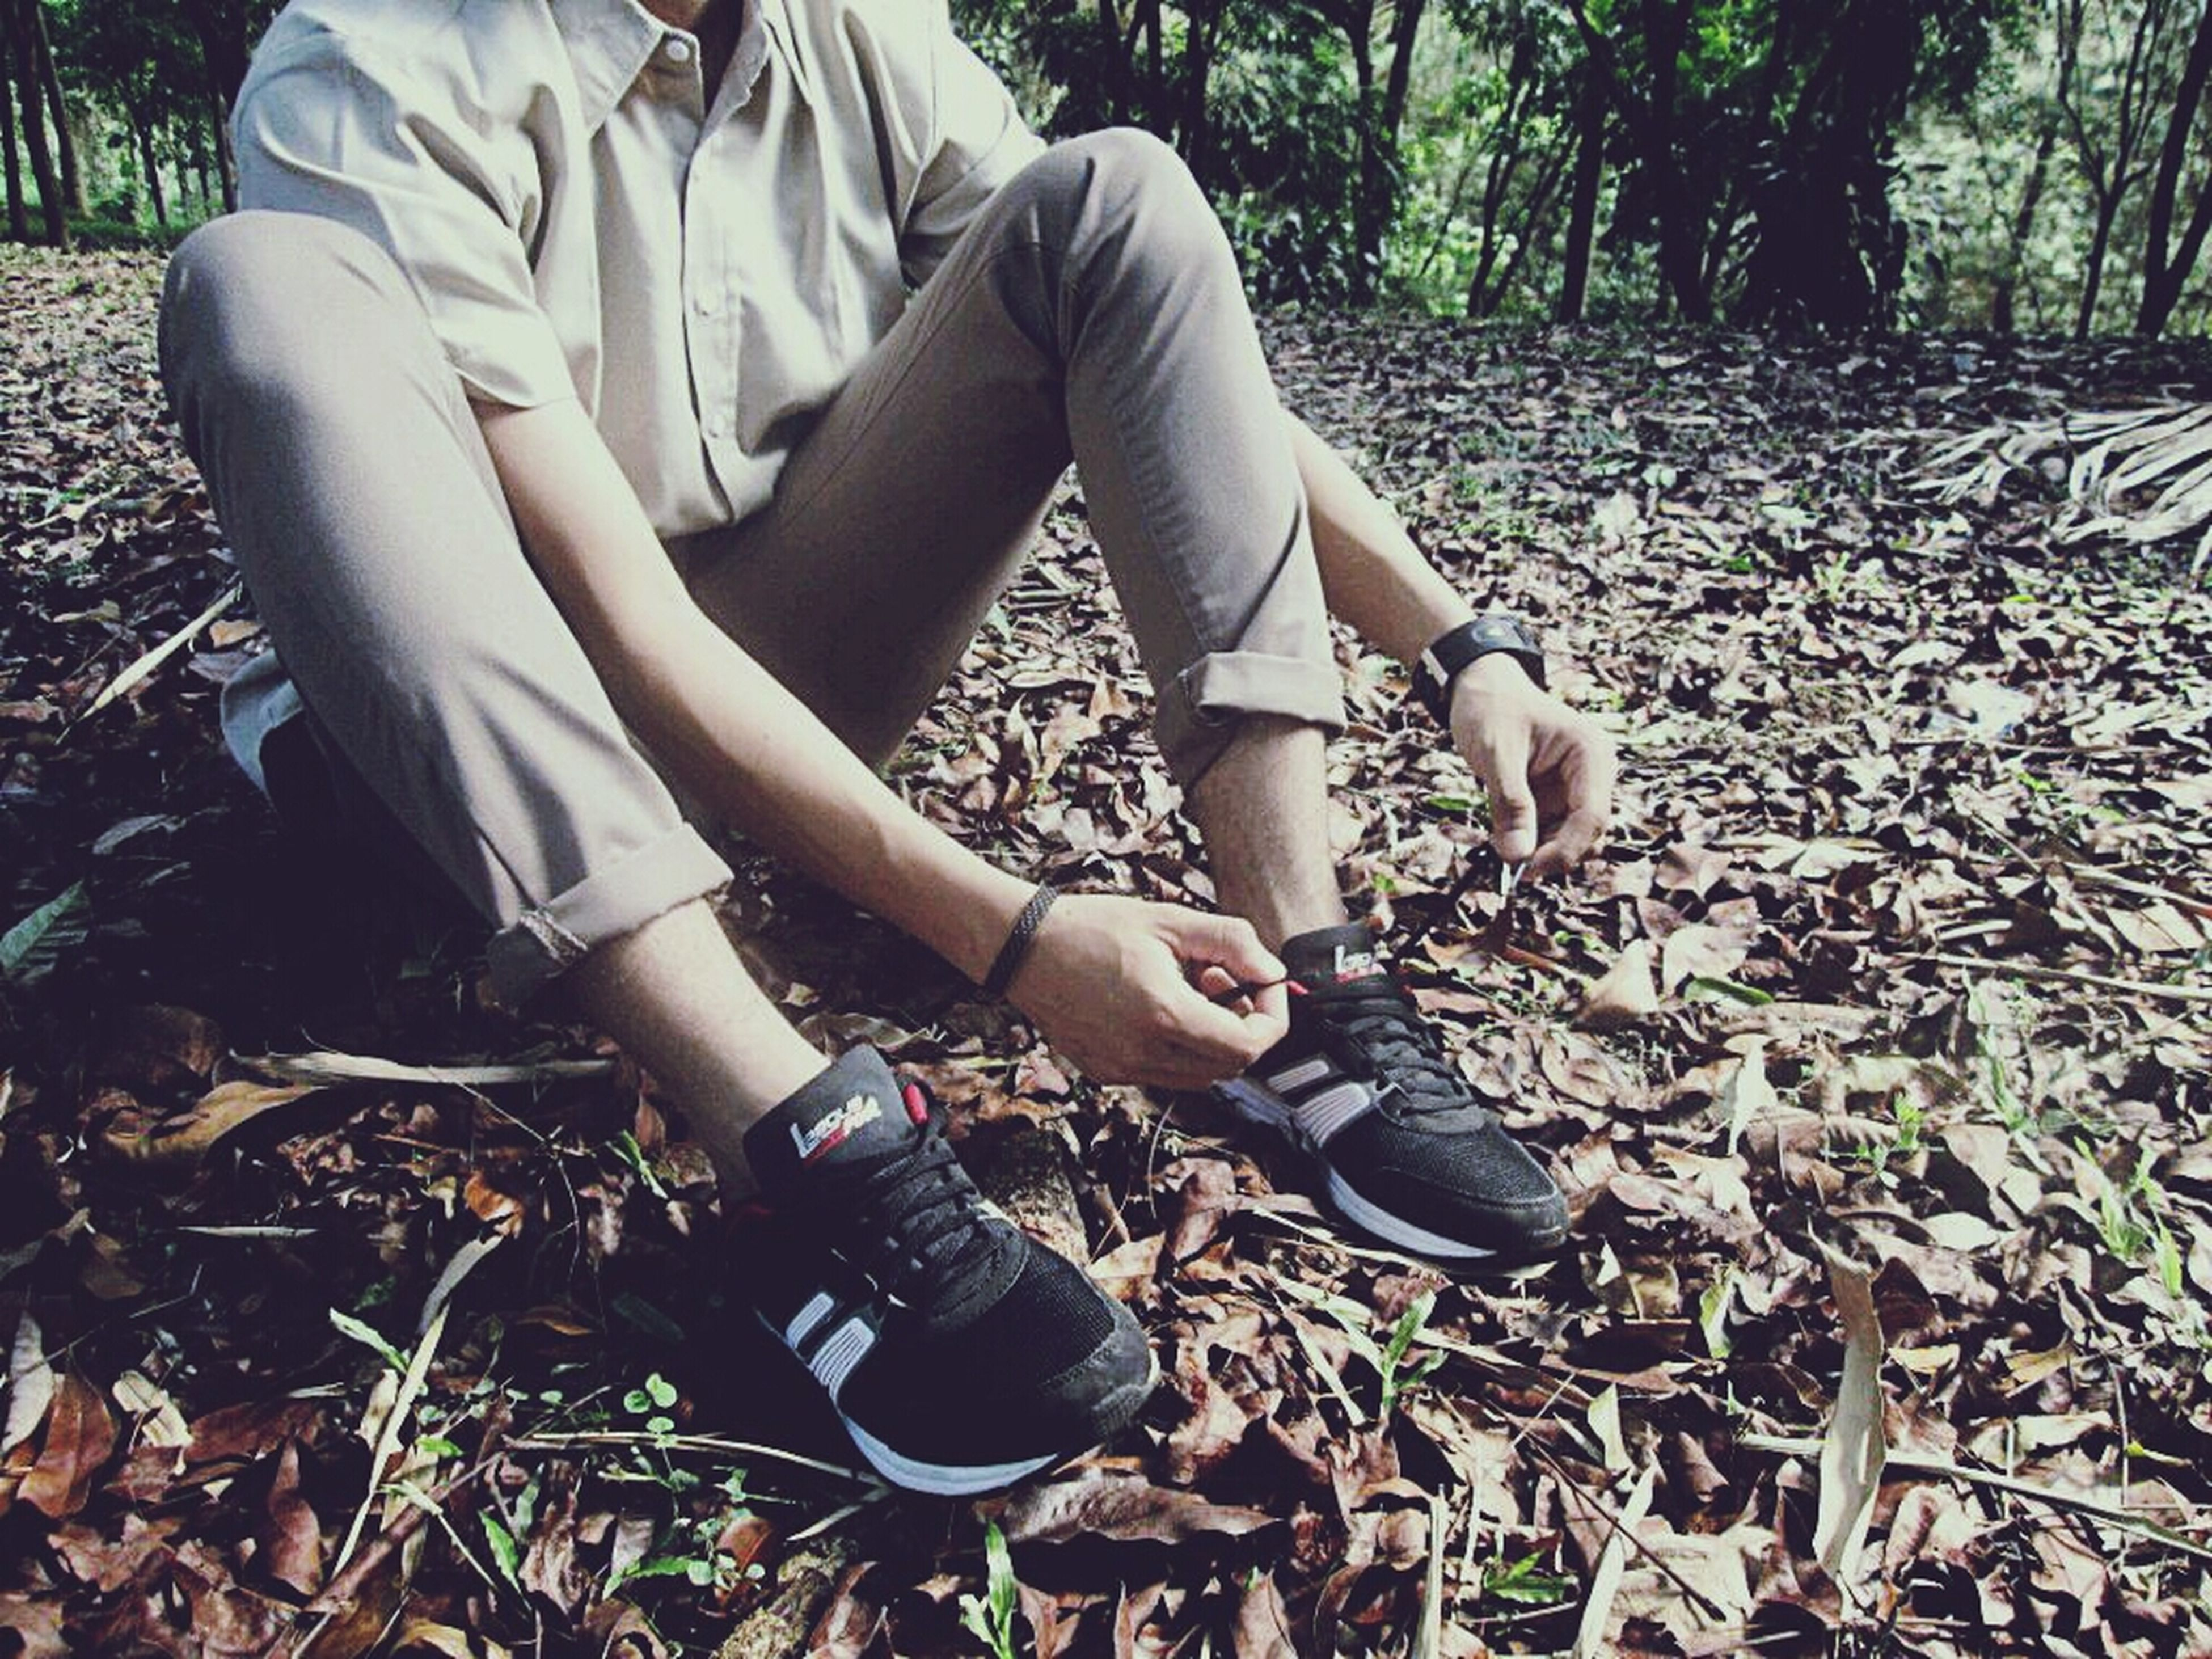 lifestyles, leisure activity, field, casual clothing, full length, childhood, outdoors, grass, day, sitting, holding, shoe, high angle view, nature, growth, forest, tree, plant